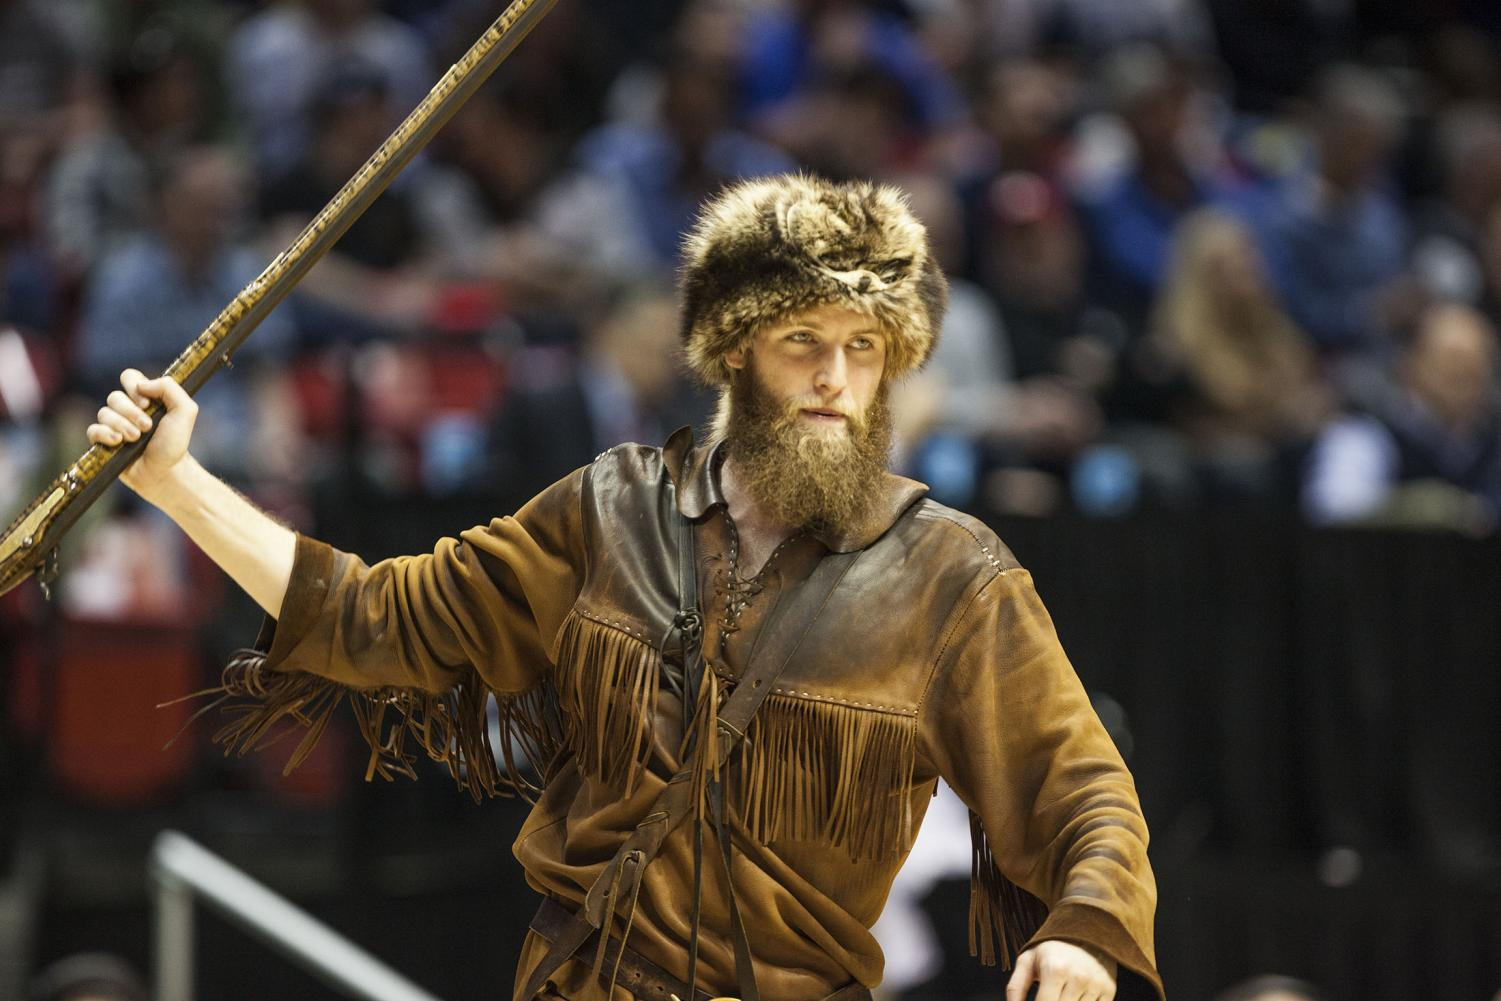 The West Virginia Mountaineer holds up his musket during West Virginia's 85-68 victory over Murray State on March 16 at Viejas Arena.